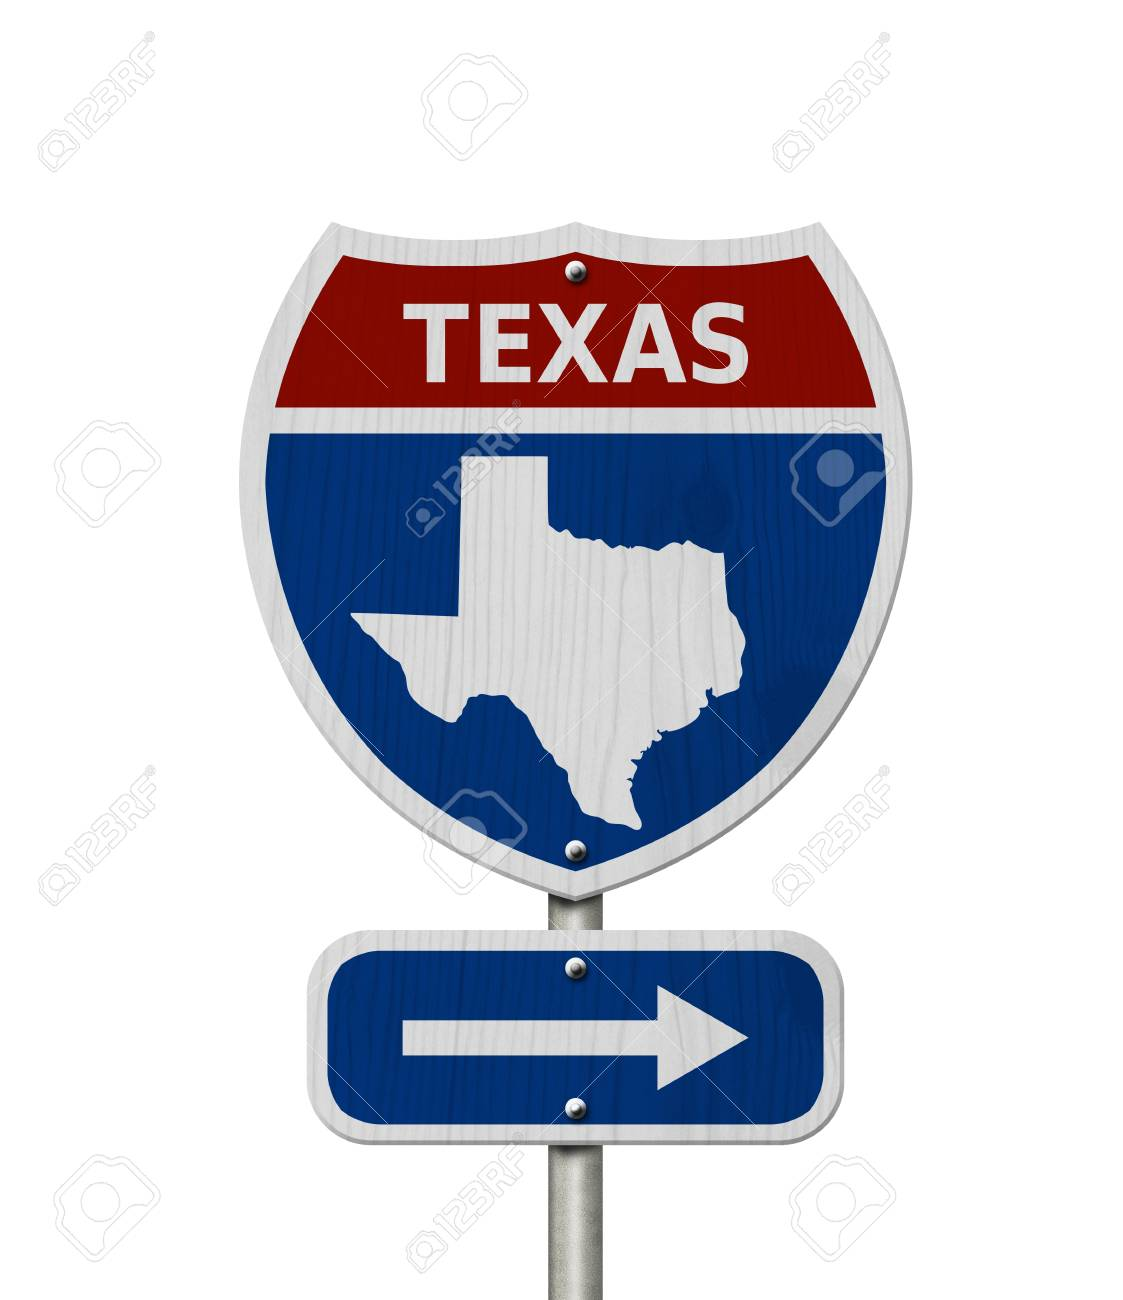 Map Of Texas Highways And Interstates.Road Trip To Texas Red White And Blue Interstate Highway Road